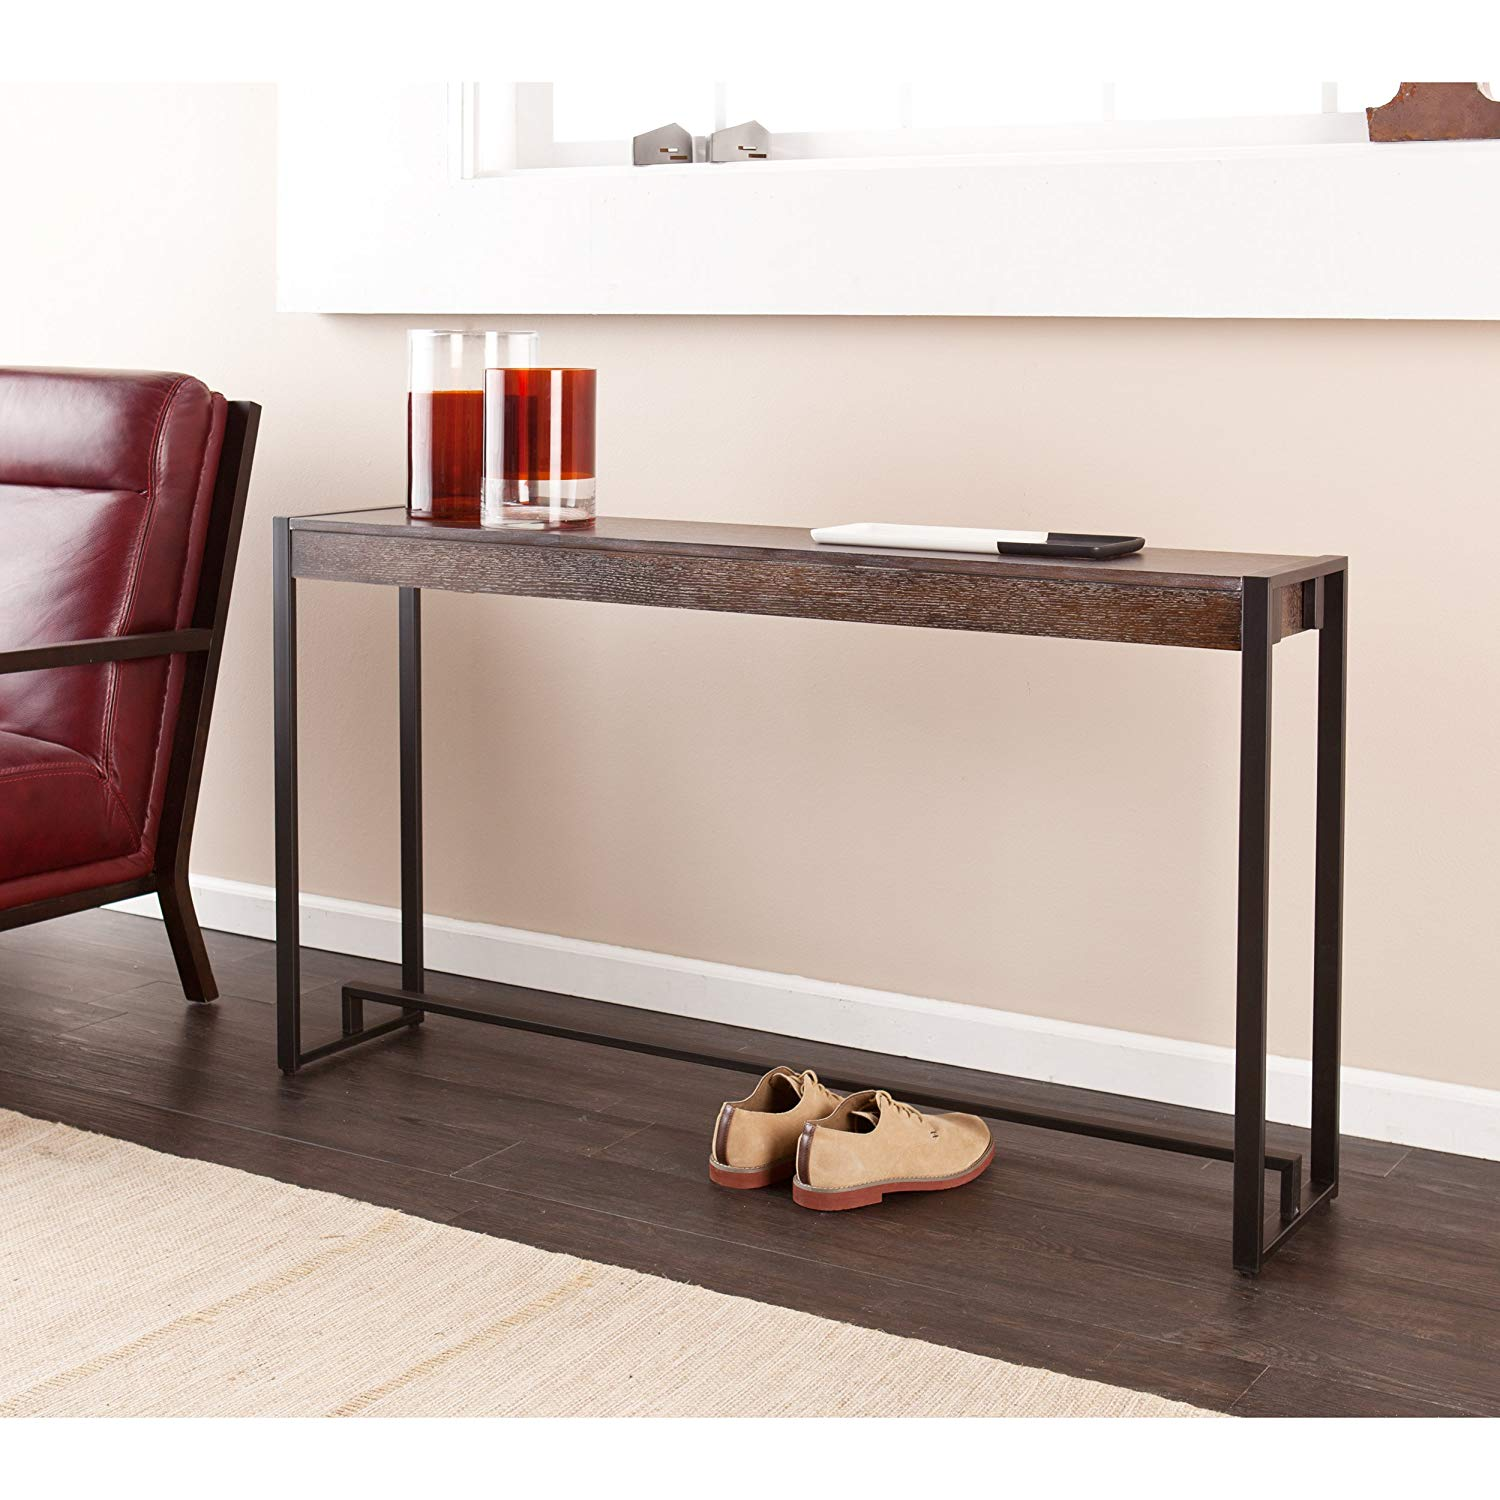 Southern Enterprises Brand Holly and Martin Macen Console Table